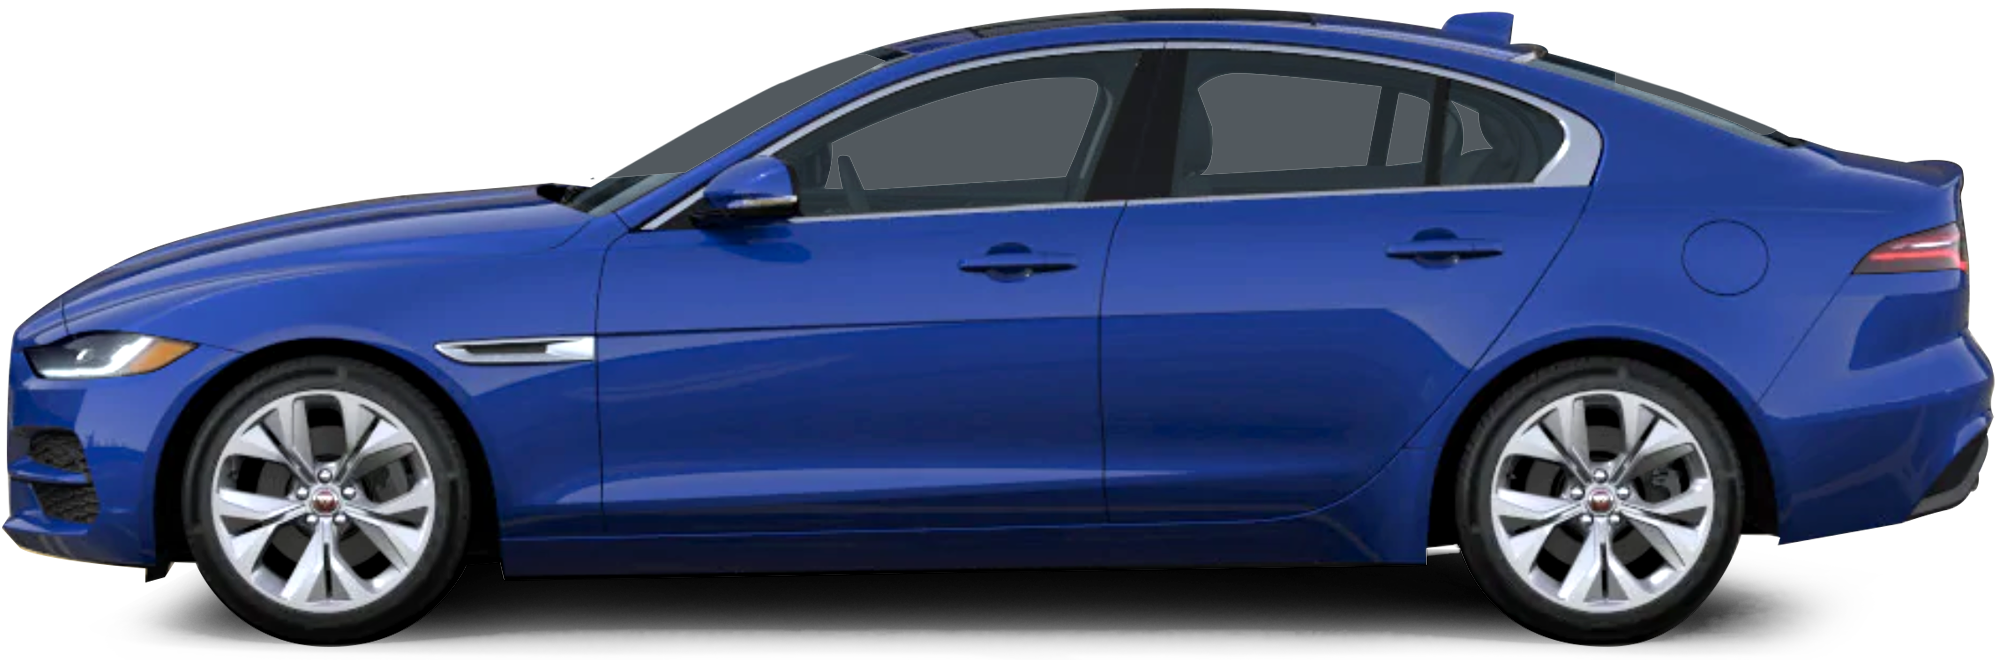 2020 Jaguar XE Sedan S